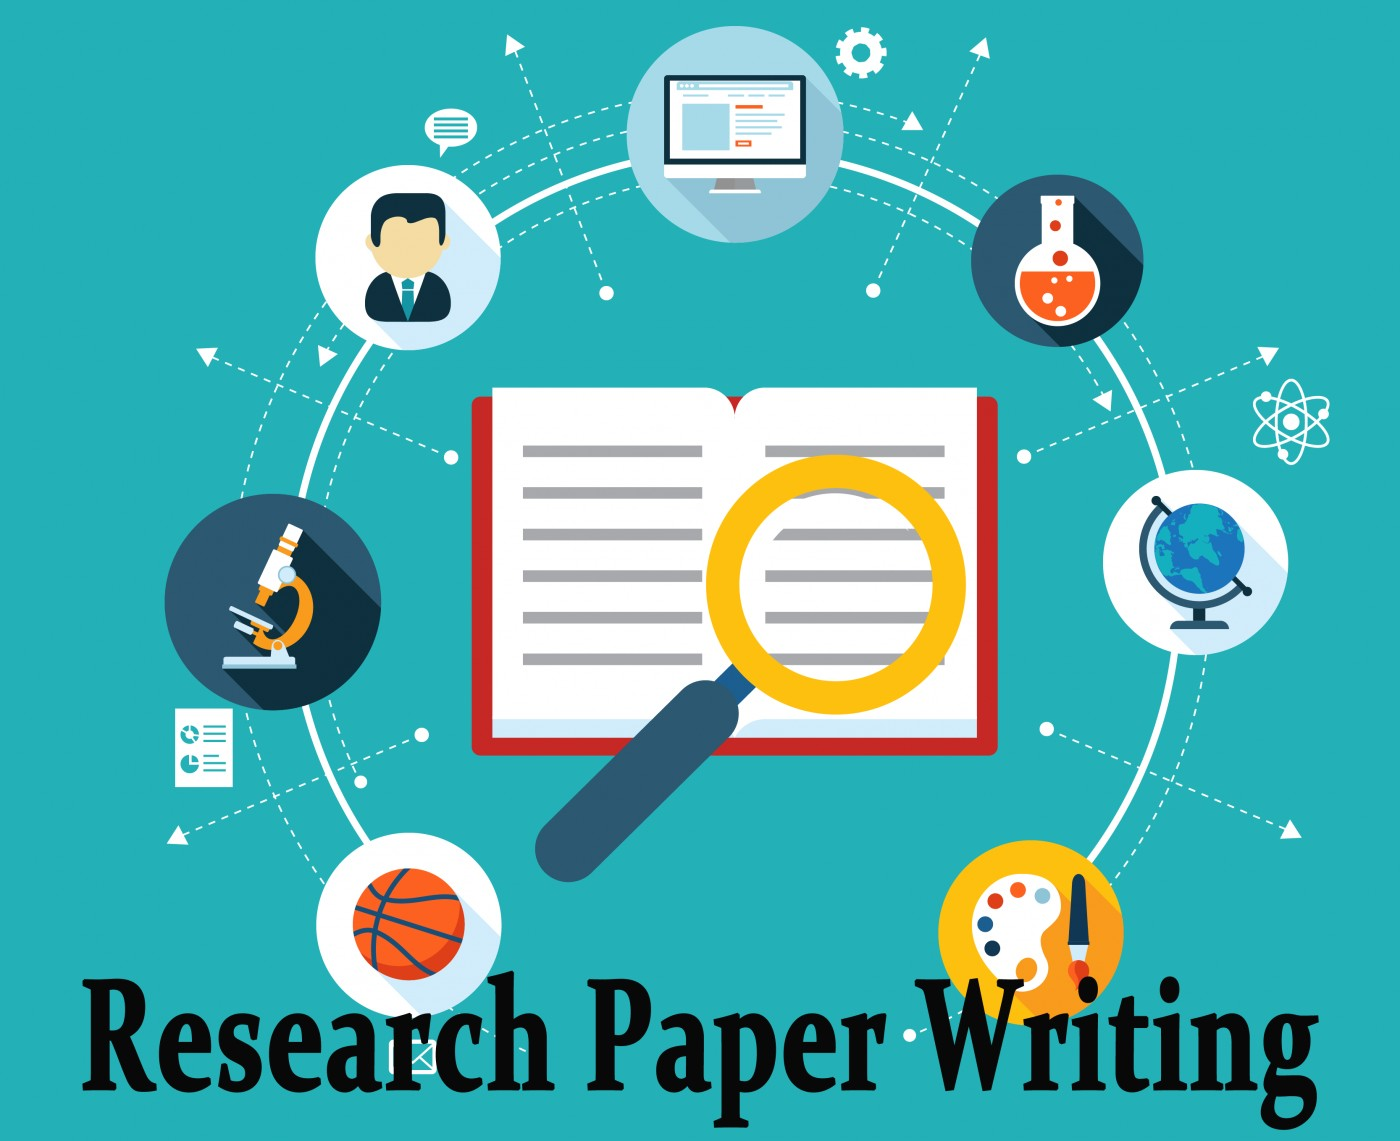 002 503 Effective Research Writing Written Wonderful Paper Pre Papers Free Already For Pdf 1400